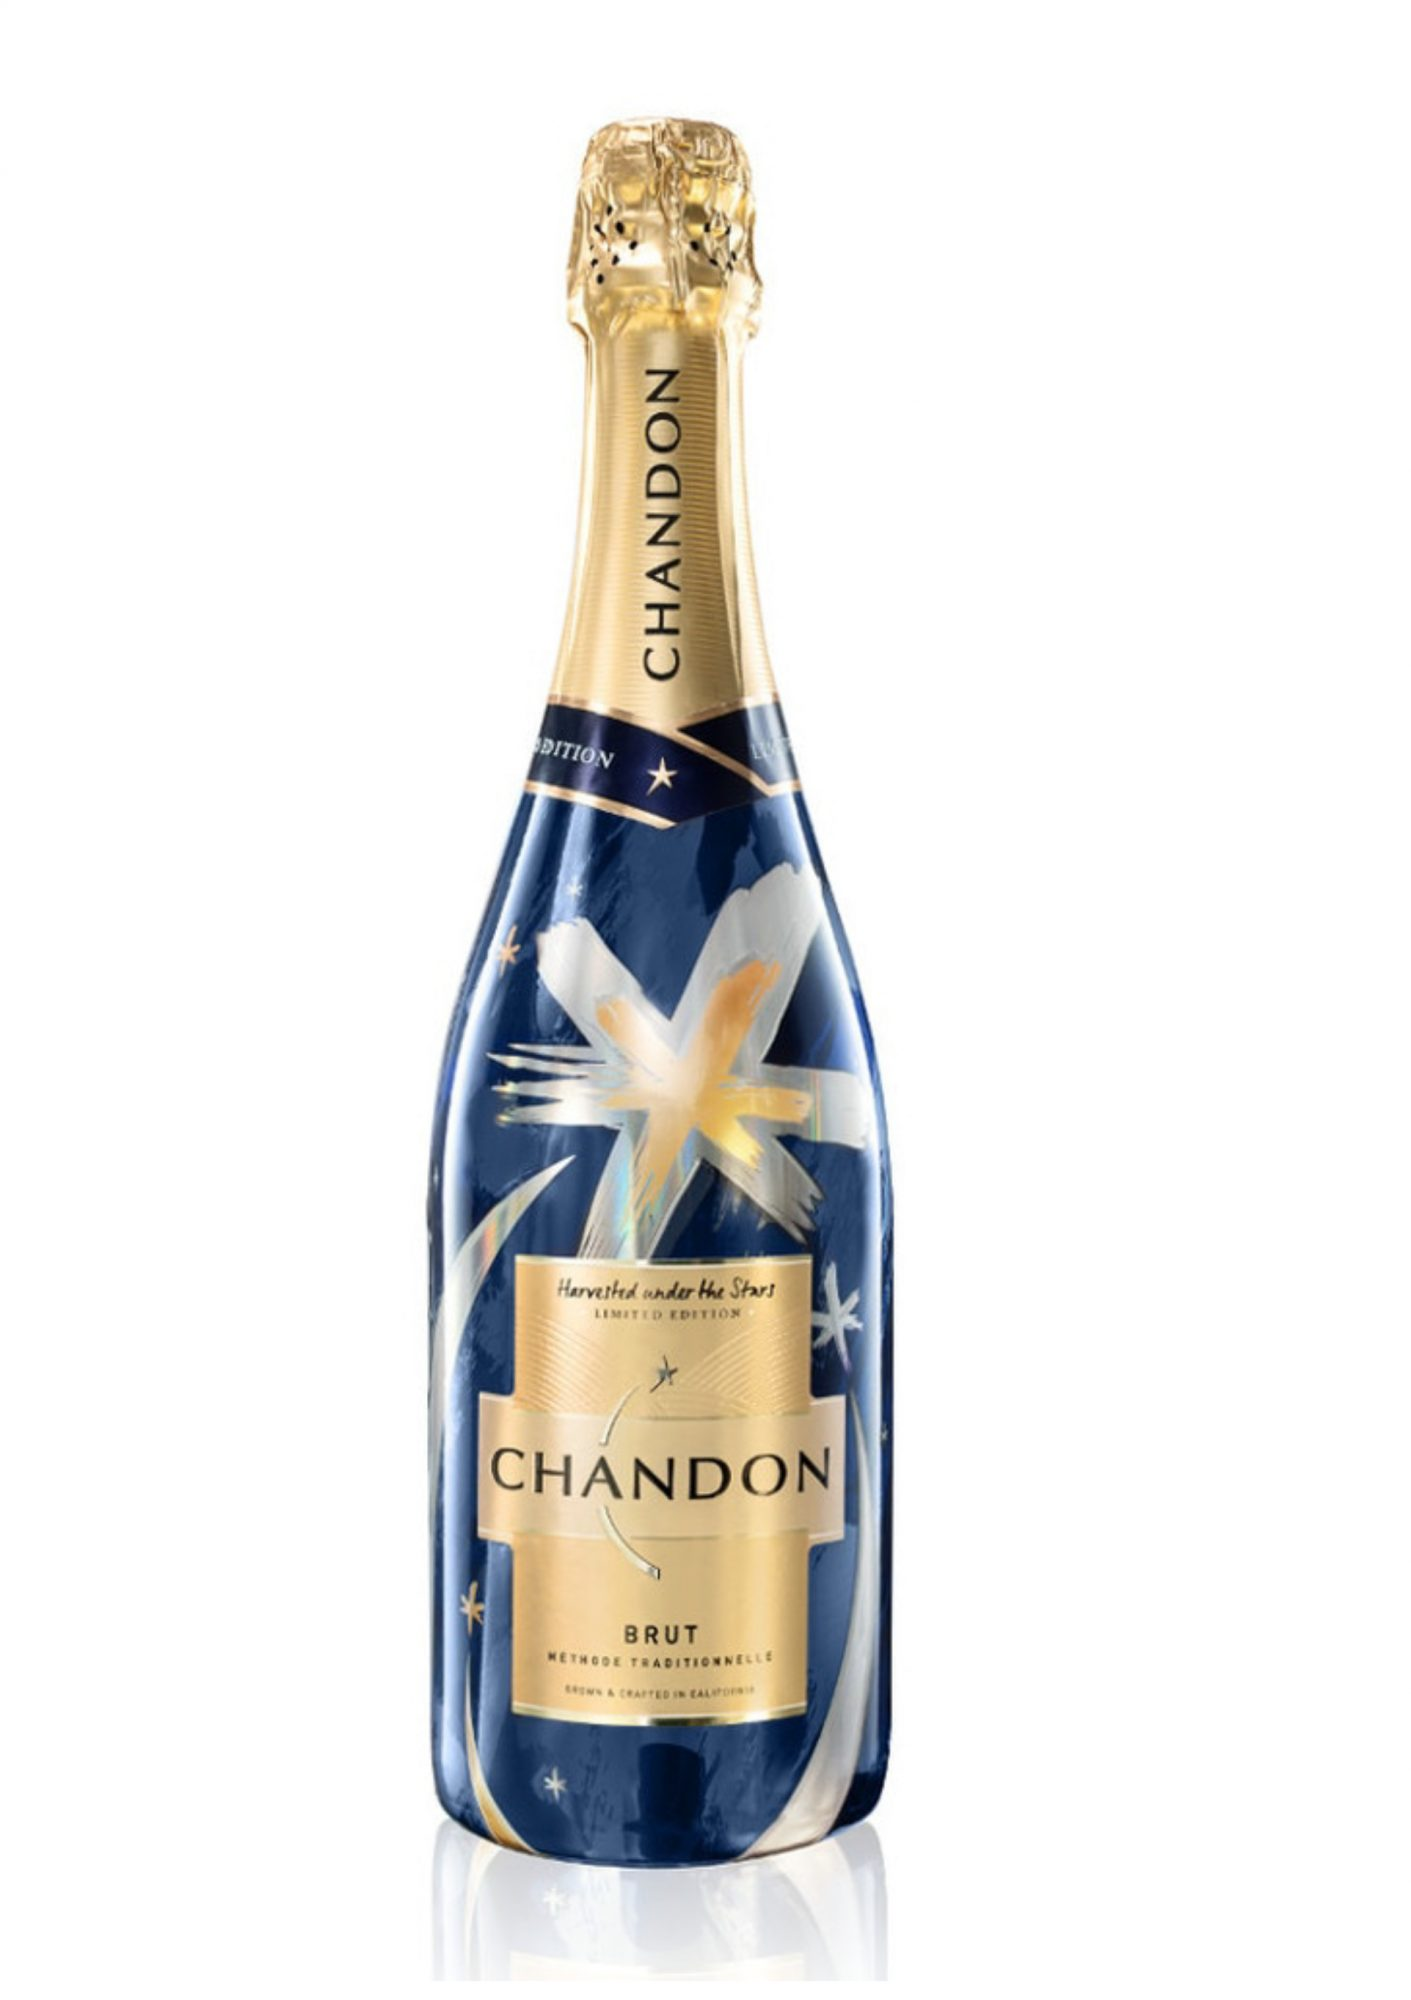 Shop Now: Chandon Harvested Under the Stars Limited Edition, $19.99, premierchampagne.com.